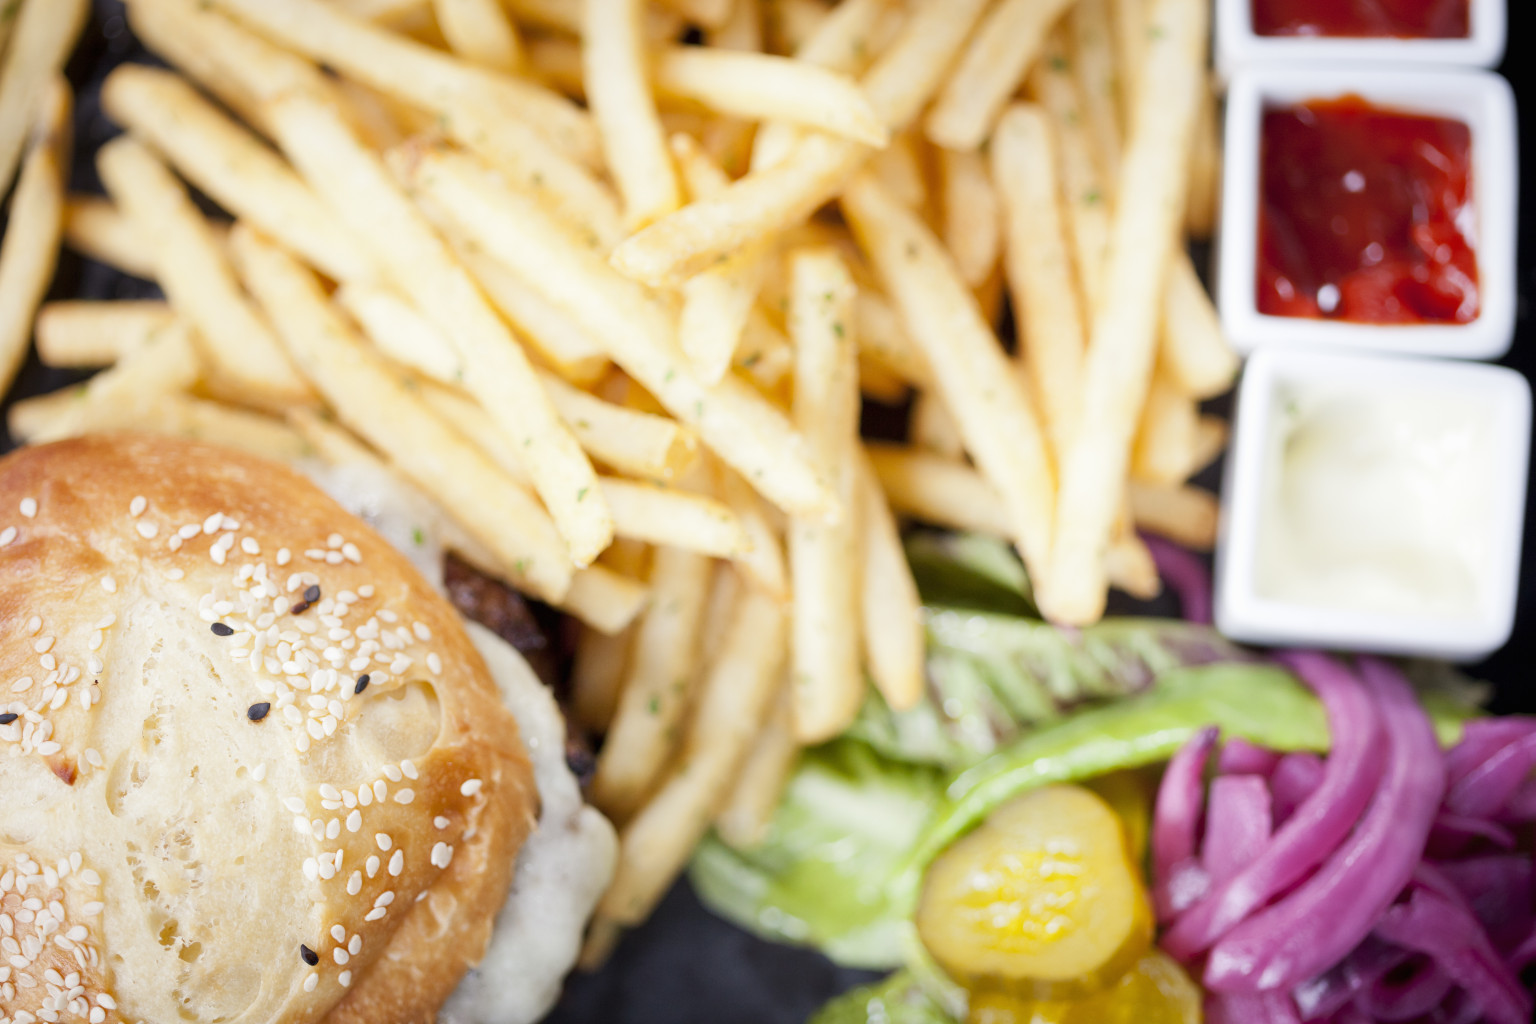 obesity nutrition and fast food essay